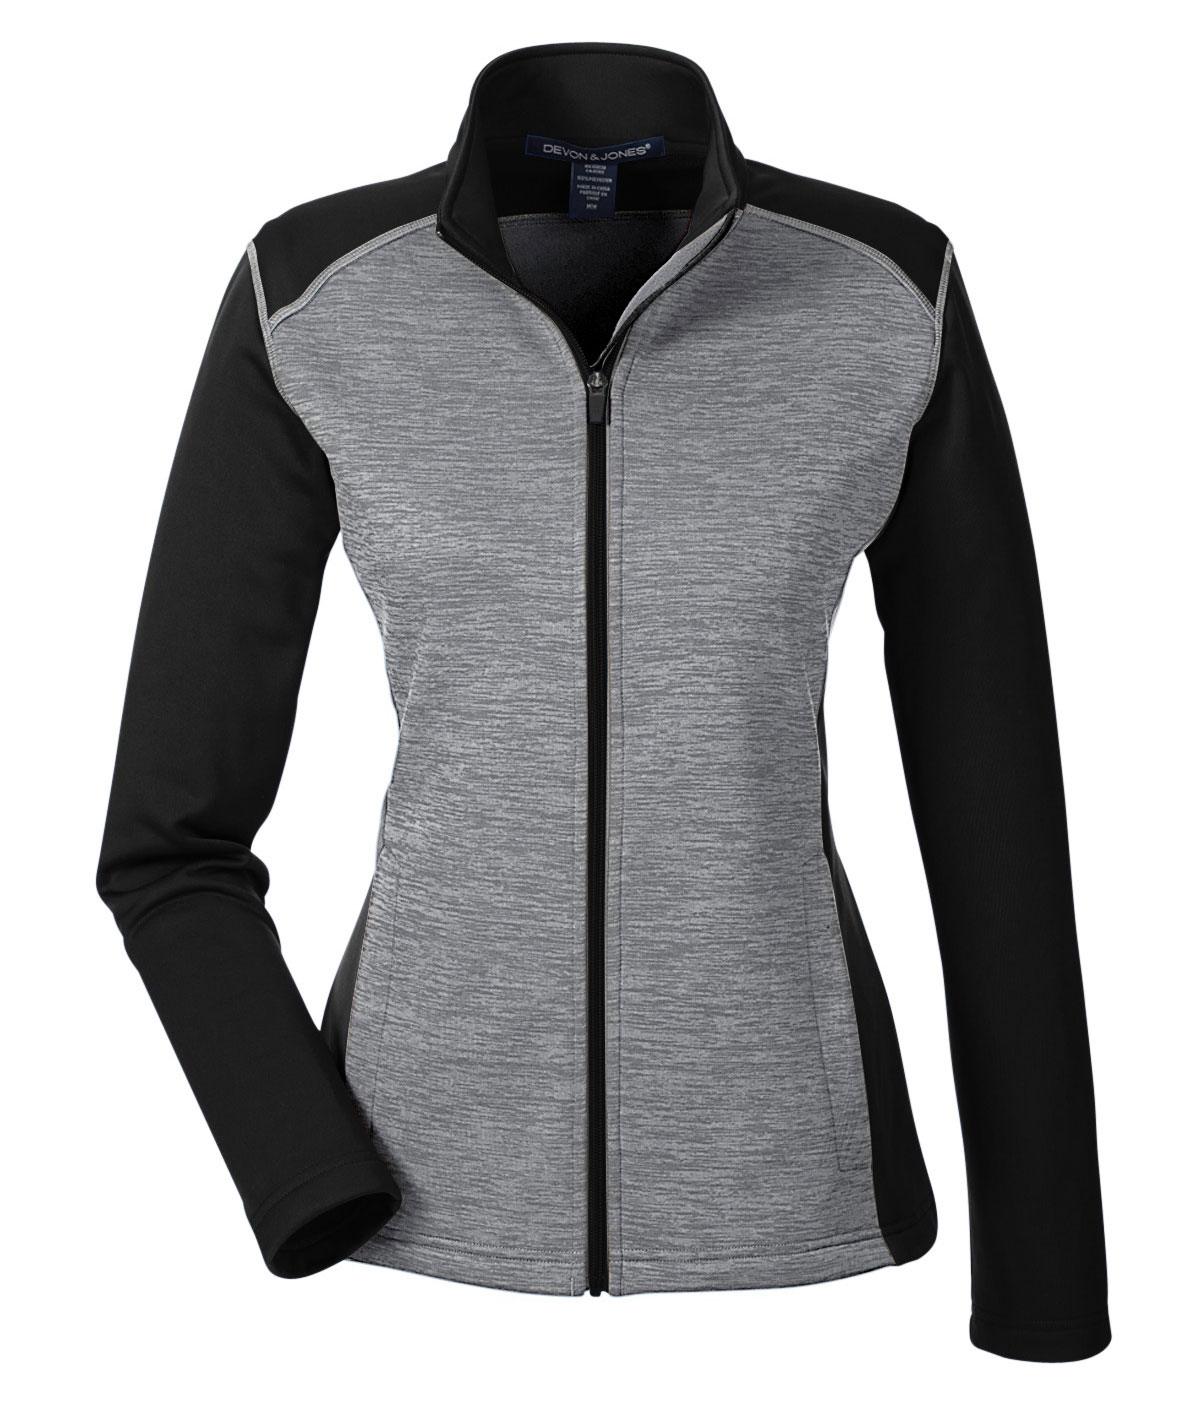 Devon & Jones Ladies Newbury Colorblock Melange Fleece Full Zip